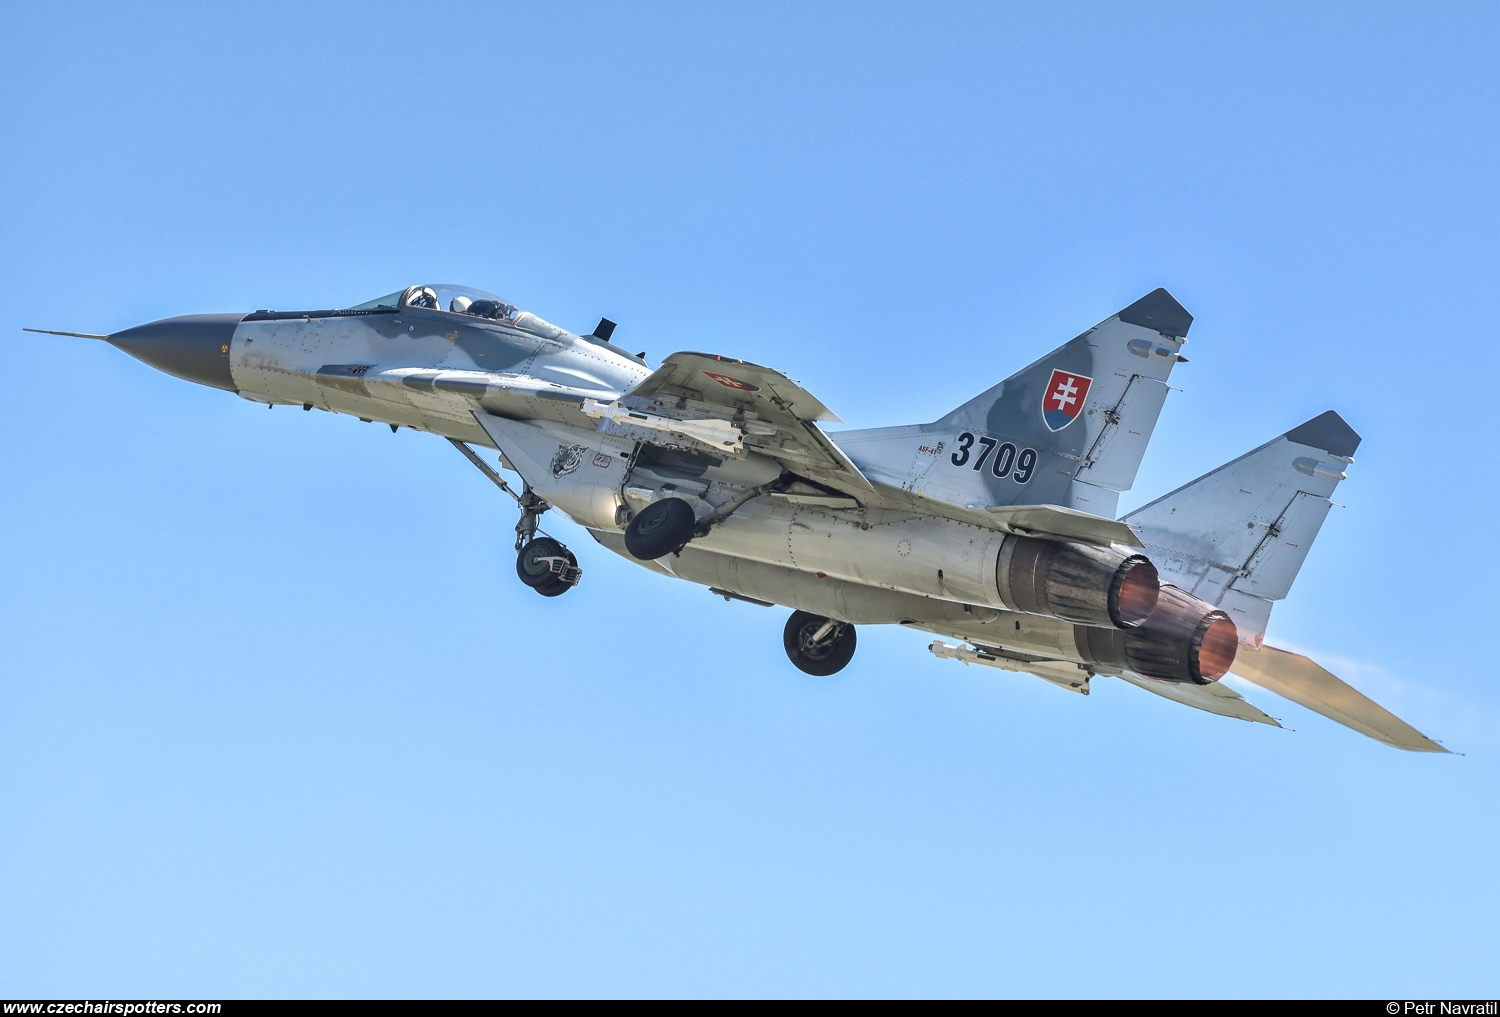 Slovakia - Air Force – Mikoyan-Gurevich MiG-29AS / 9-12A 3709